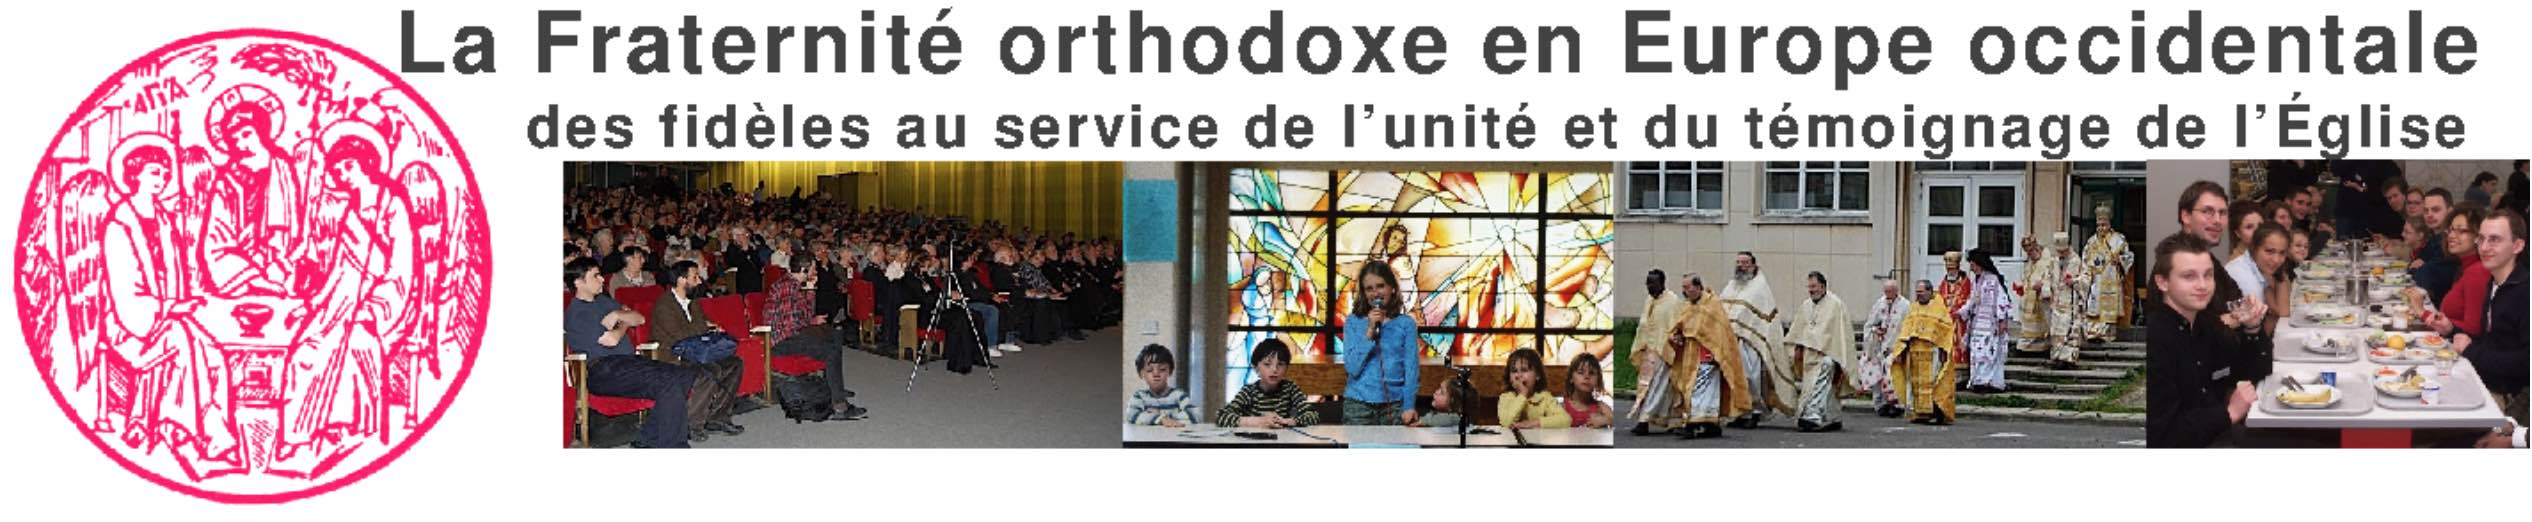 Fraternite Orthodoxe EU